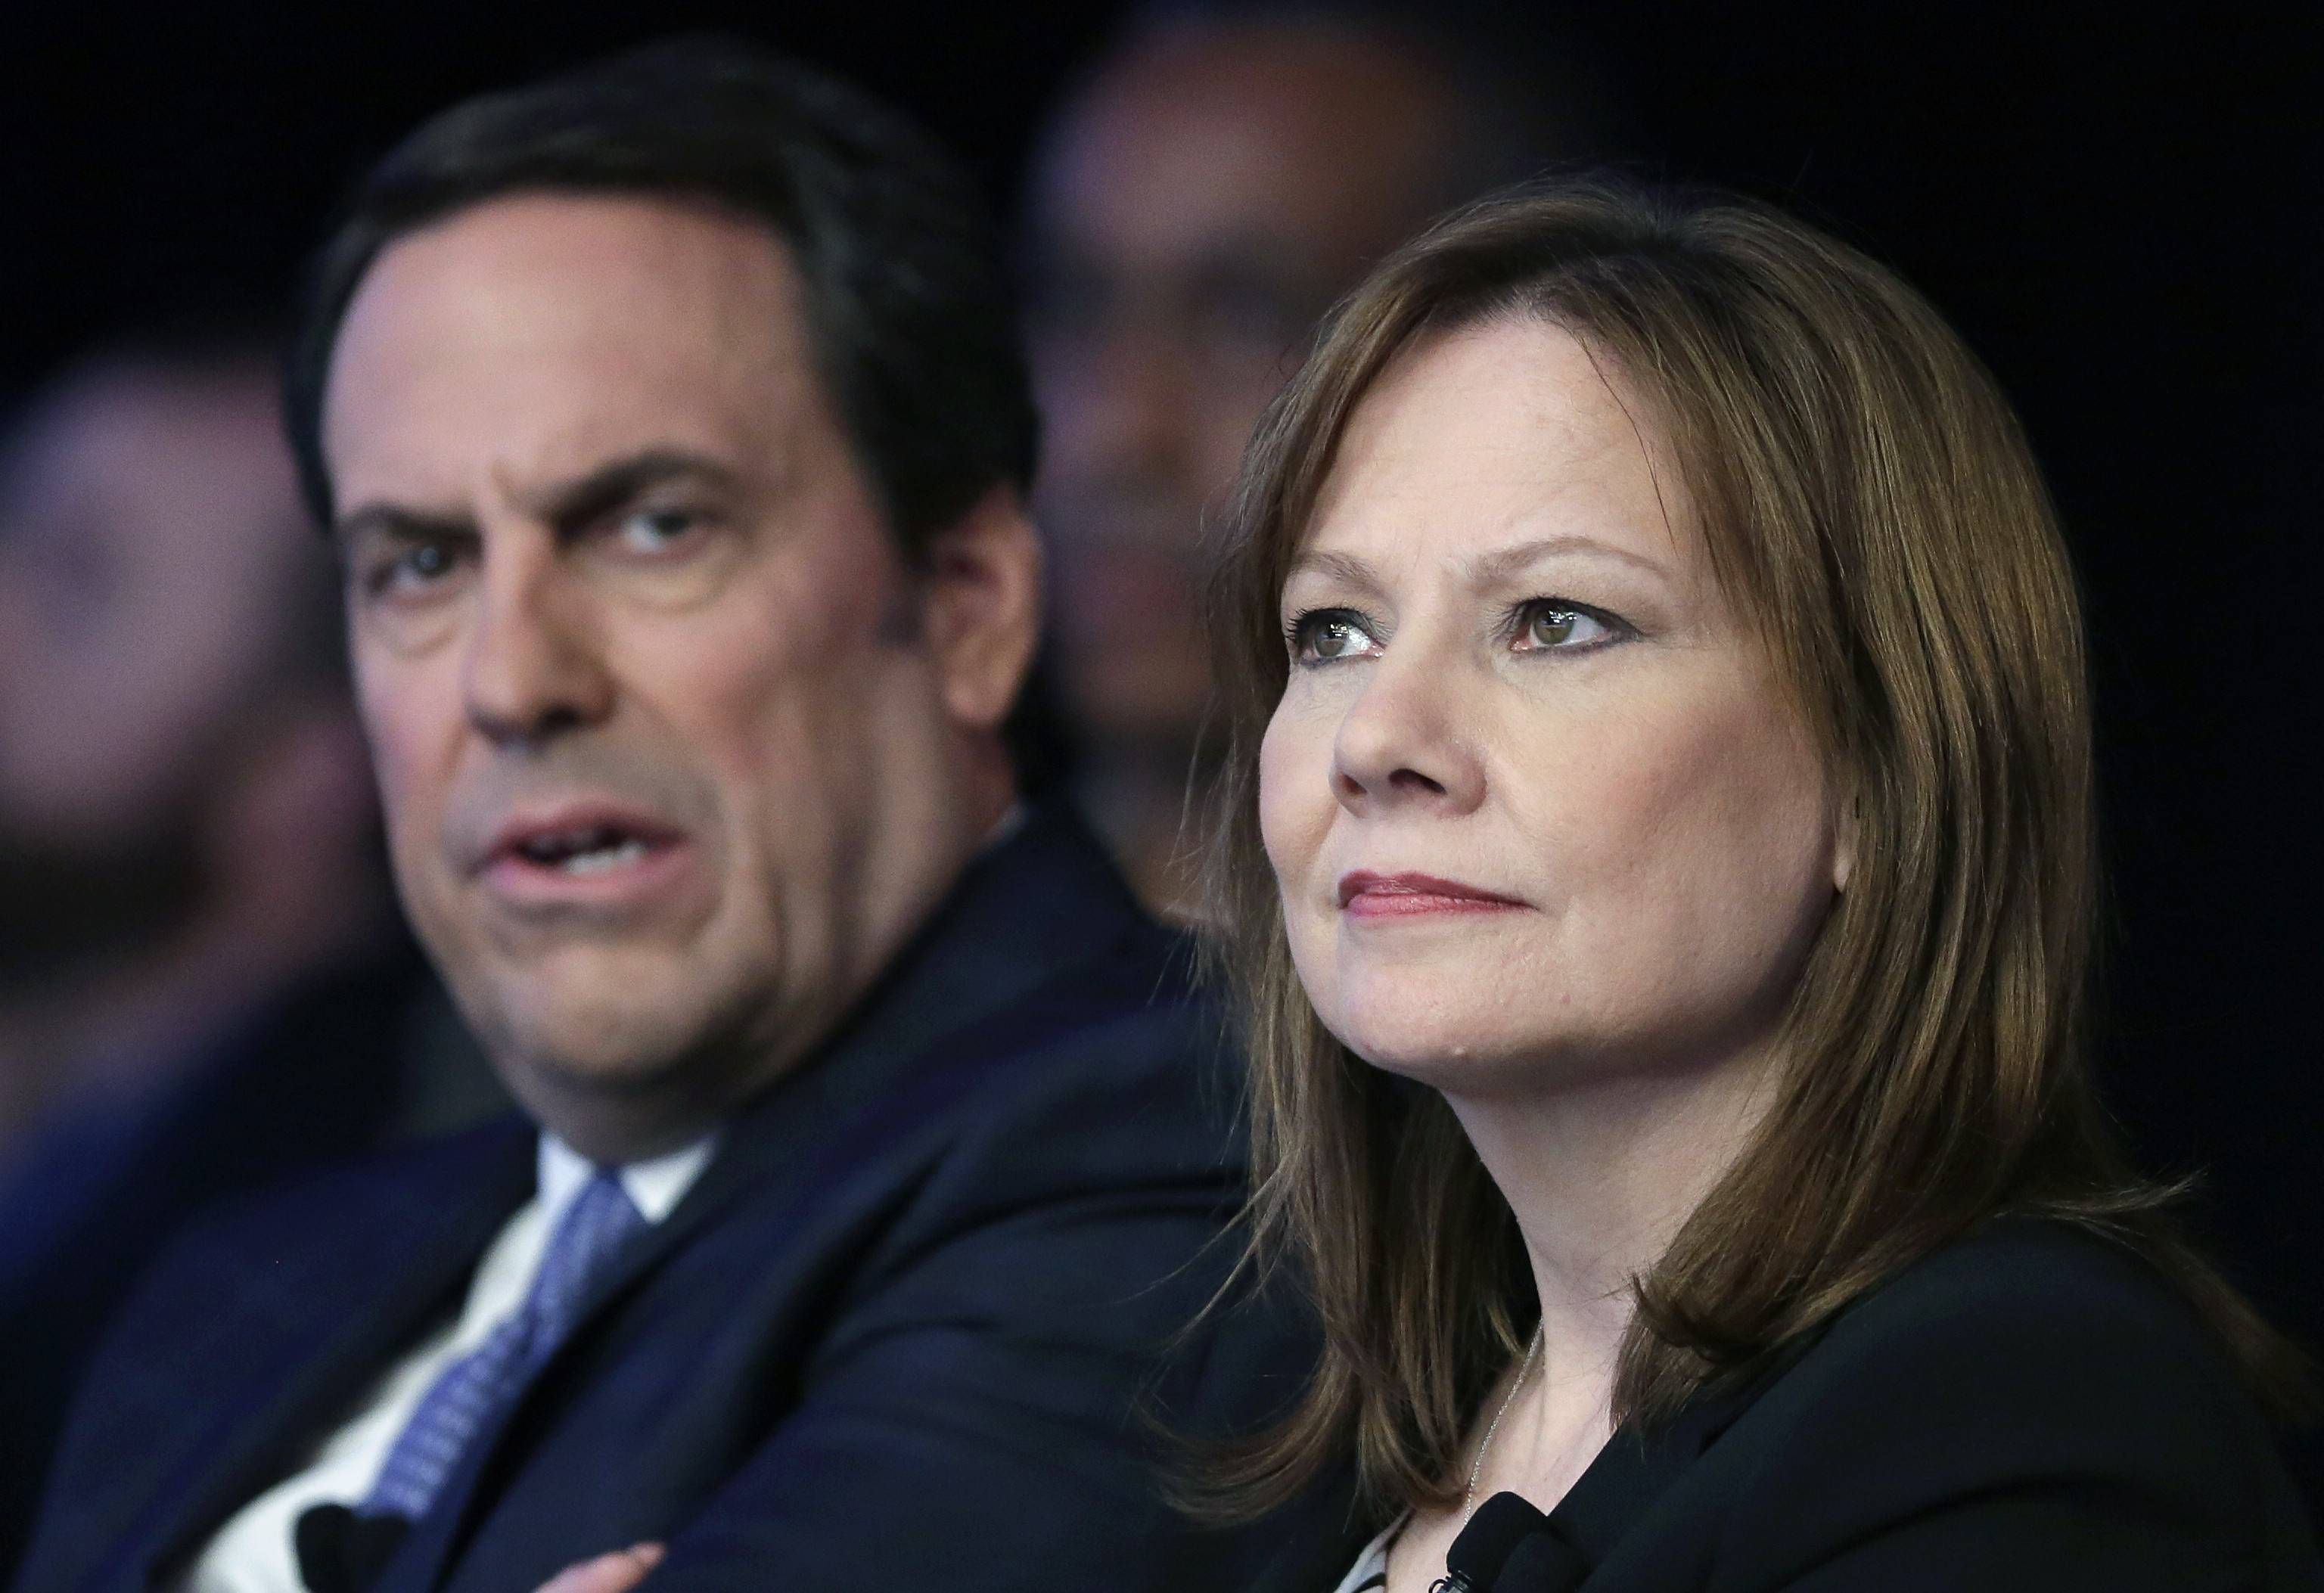 Mary Barra, CEO of General Motors, right, and Mark Reuss, executive vice president of Global Product Development for GM and President of GM America, watch the introduction of new Chevrolet cars at the New York International Auto Show April 15. GM's corporate structure — as well as what Barra has called a culture that valued cost-savings over safety — will likely be a prime target in a report expected this week from former U.S. Attorney Anton Valukas.